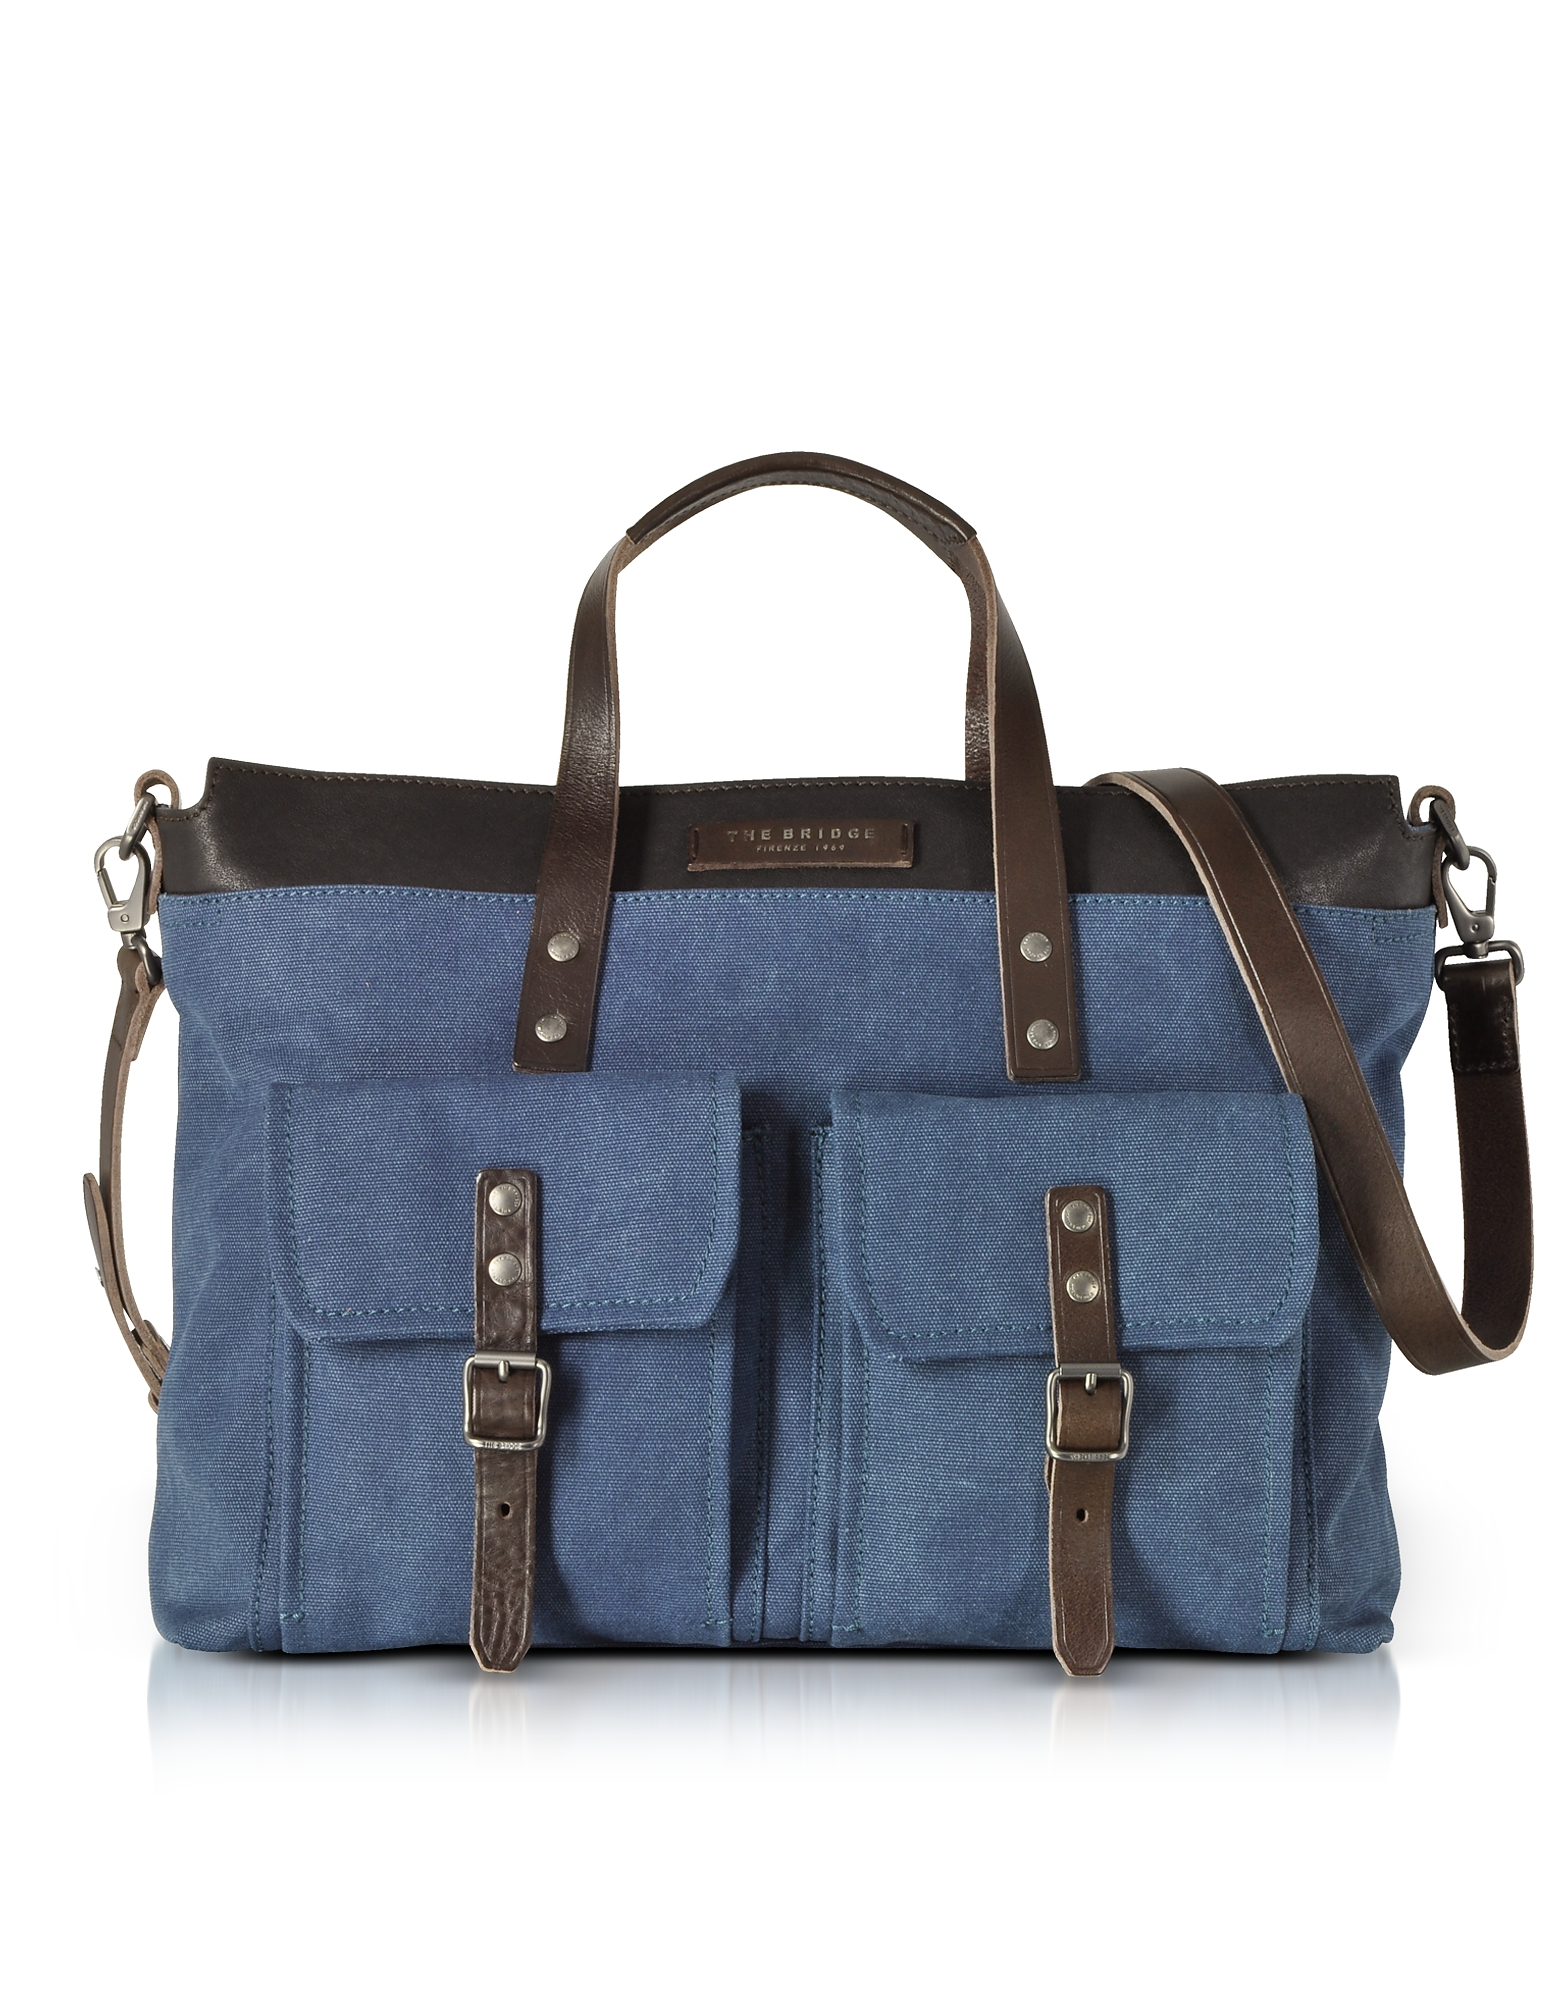 Carver-D Canvas and Leather Men's Tote Bag